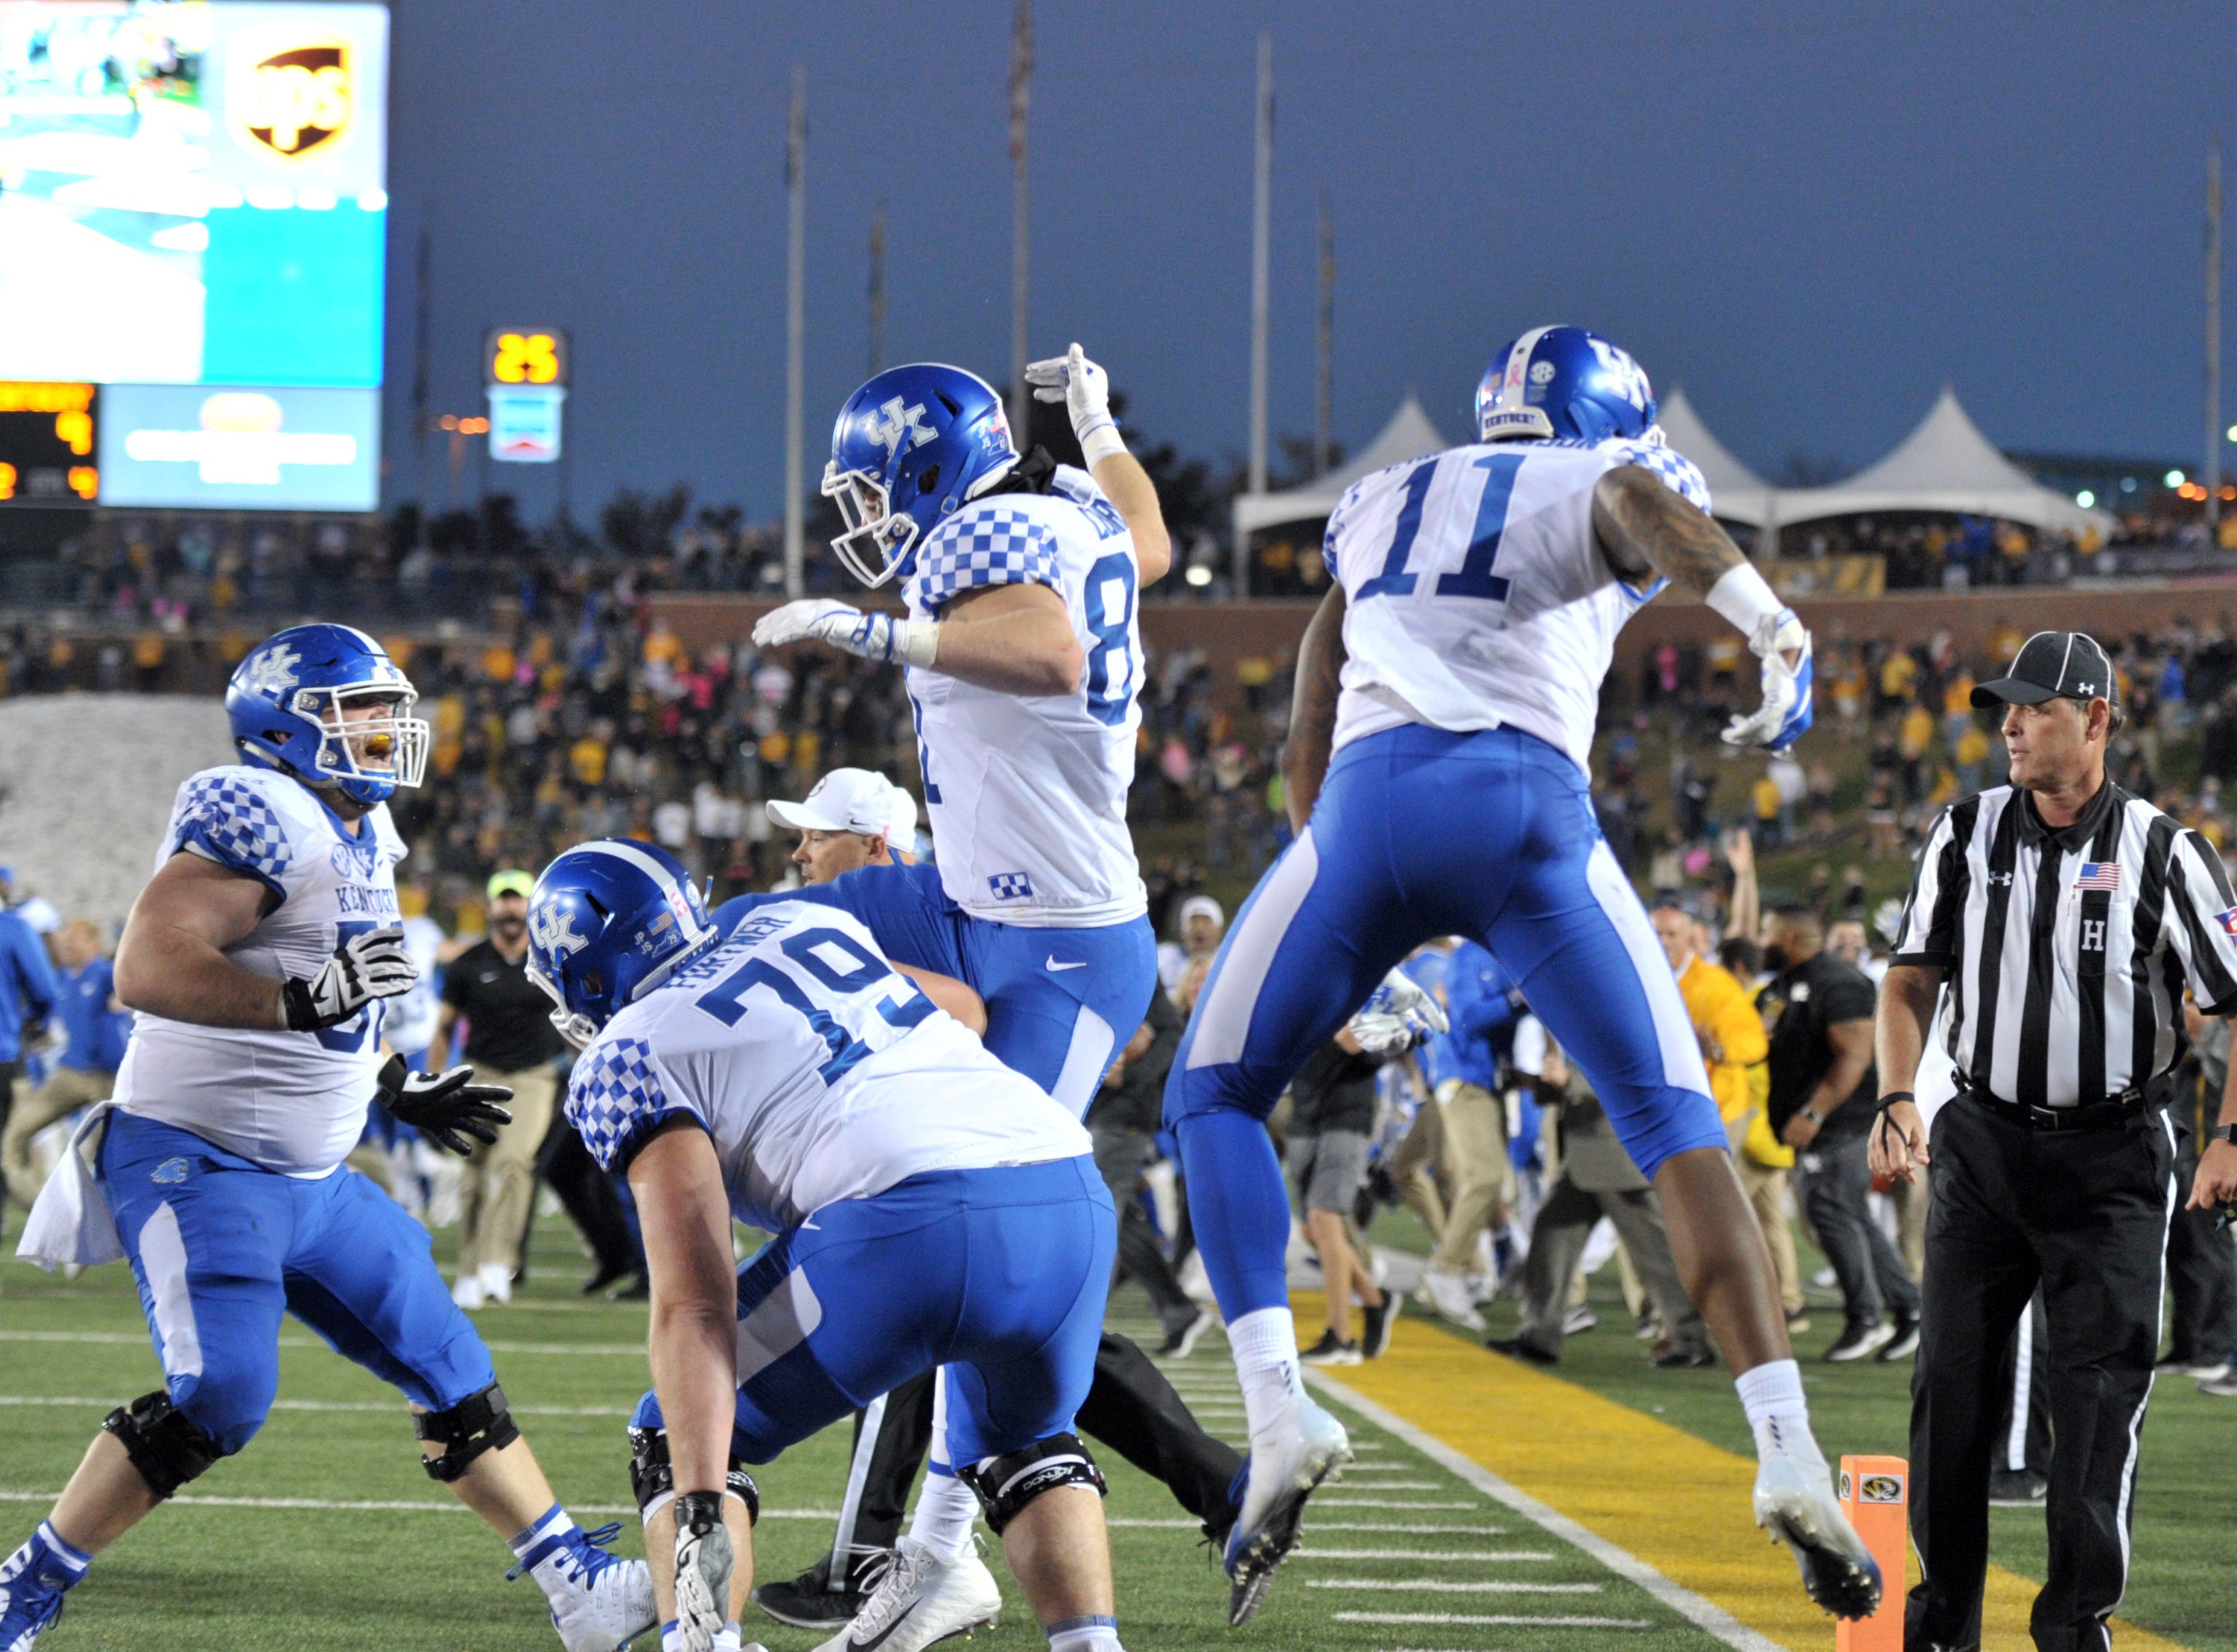 Kentucky Wildcats players celebrate after the win over the Missouri Tigers at Memorial Stadium/Faurot Field.